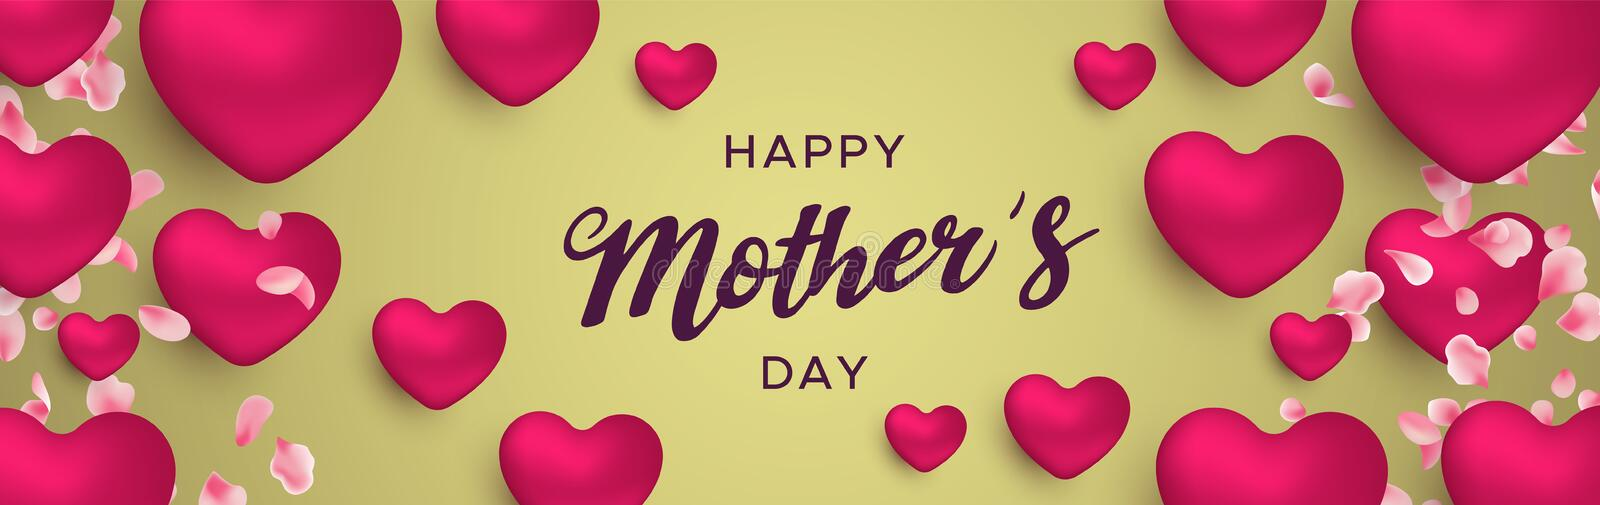 Happy Mothers Day banner of pink heart balloons royalty free illustration